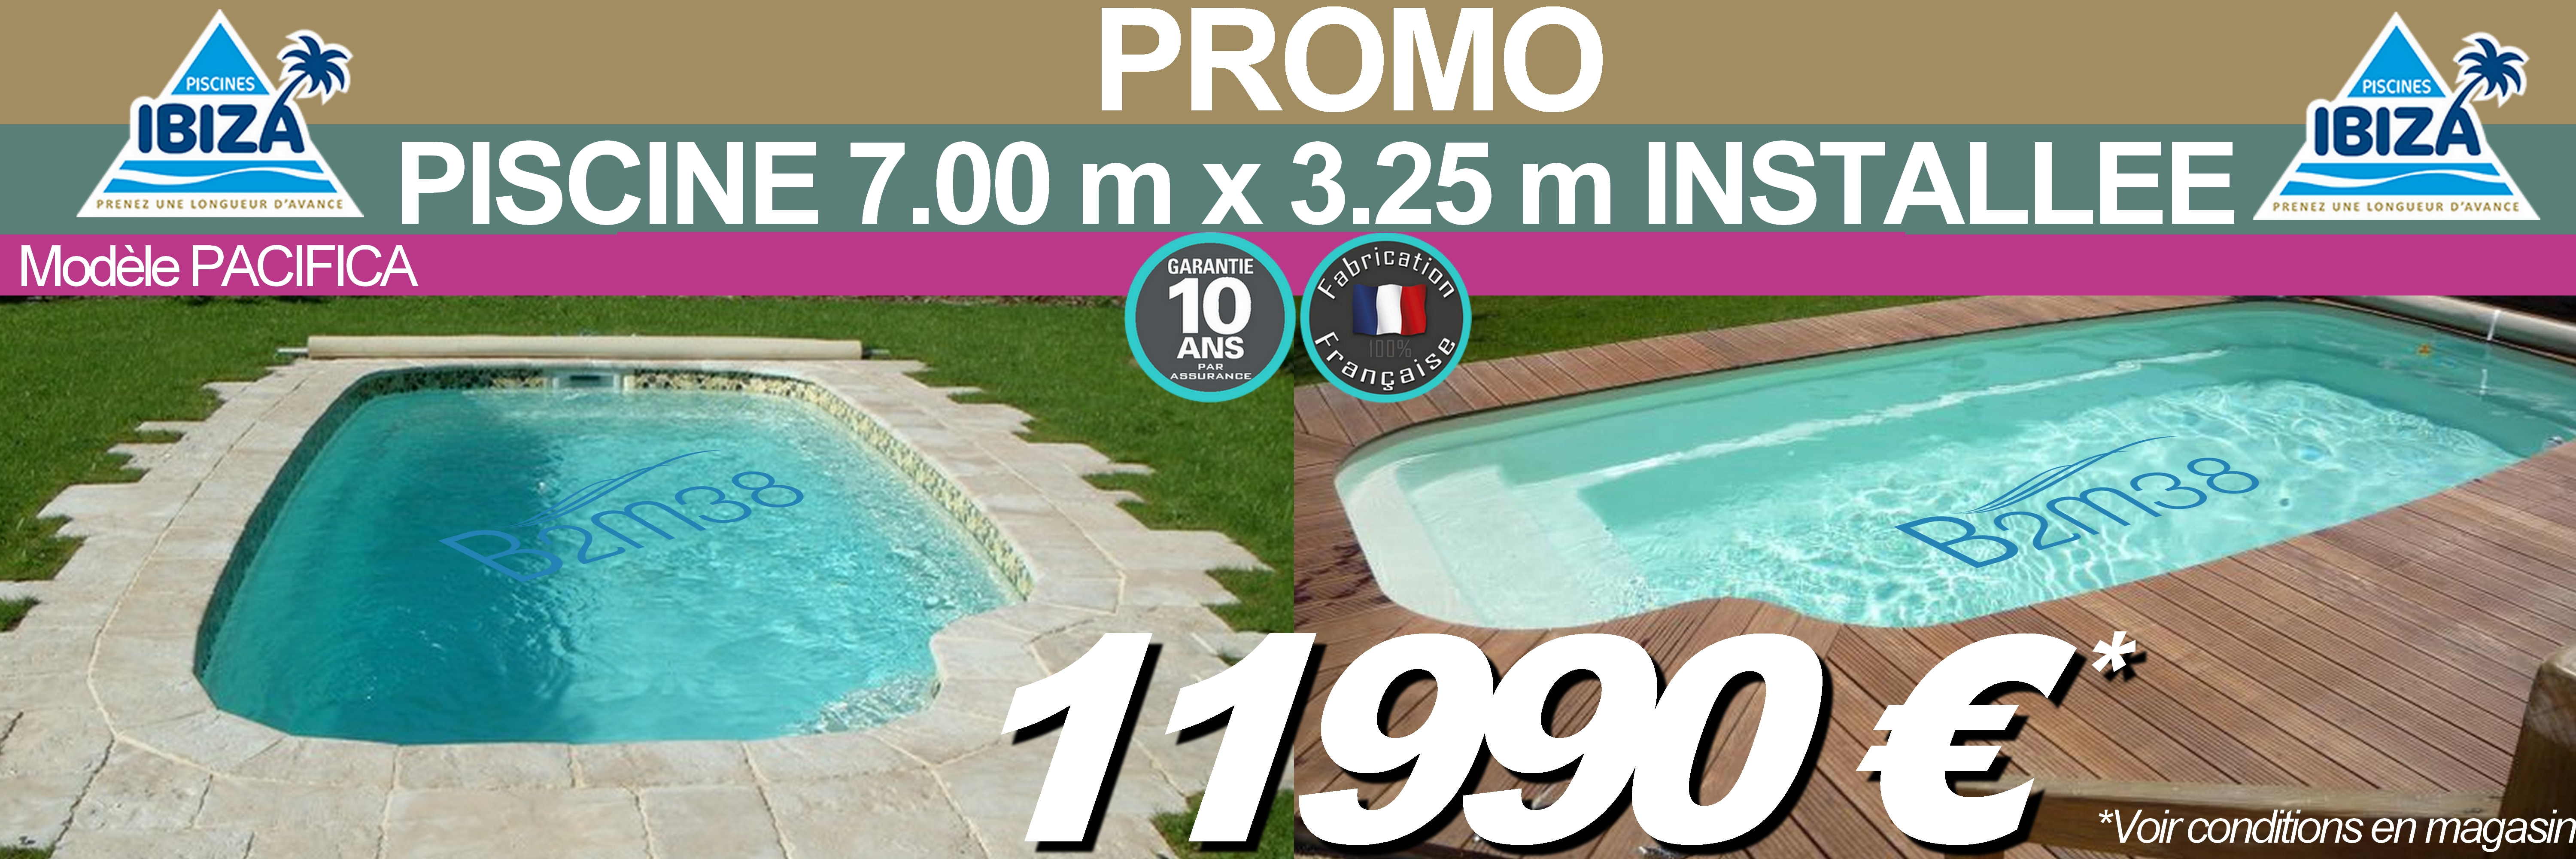 B2m38 piscine abri et spas for Abri piscine promotion